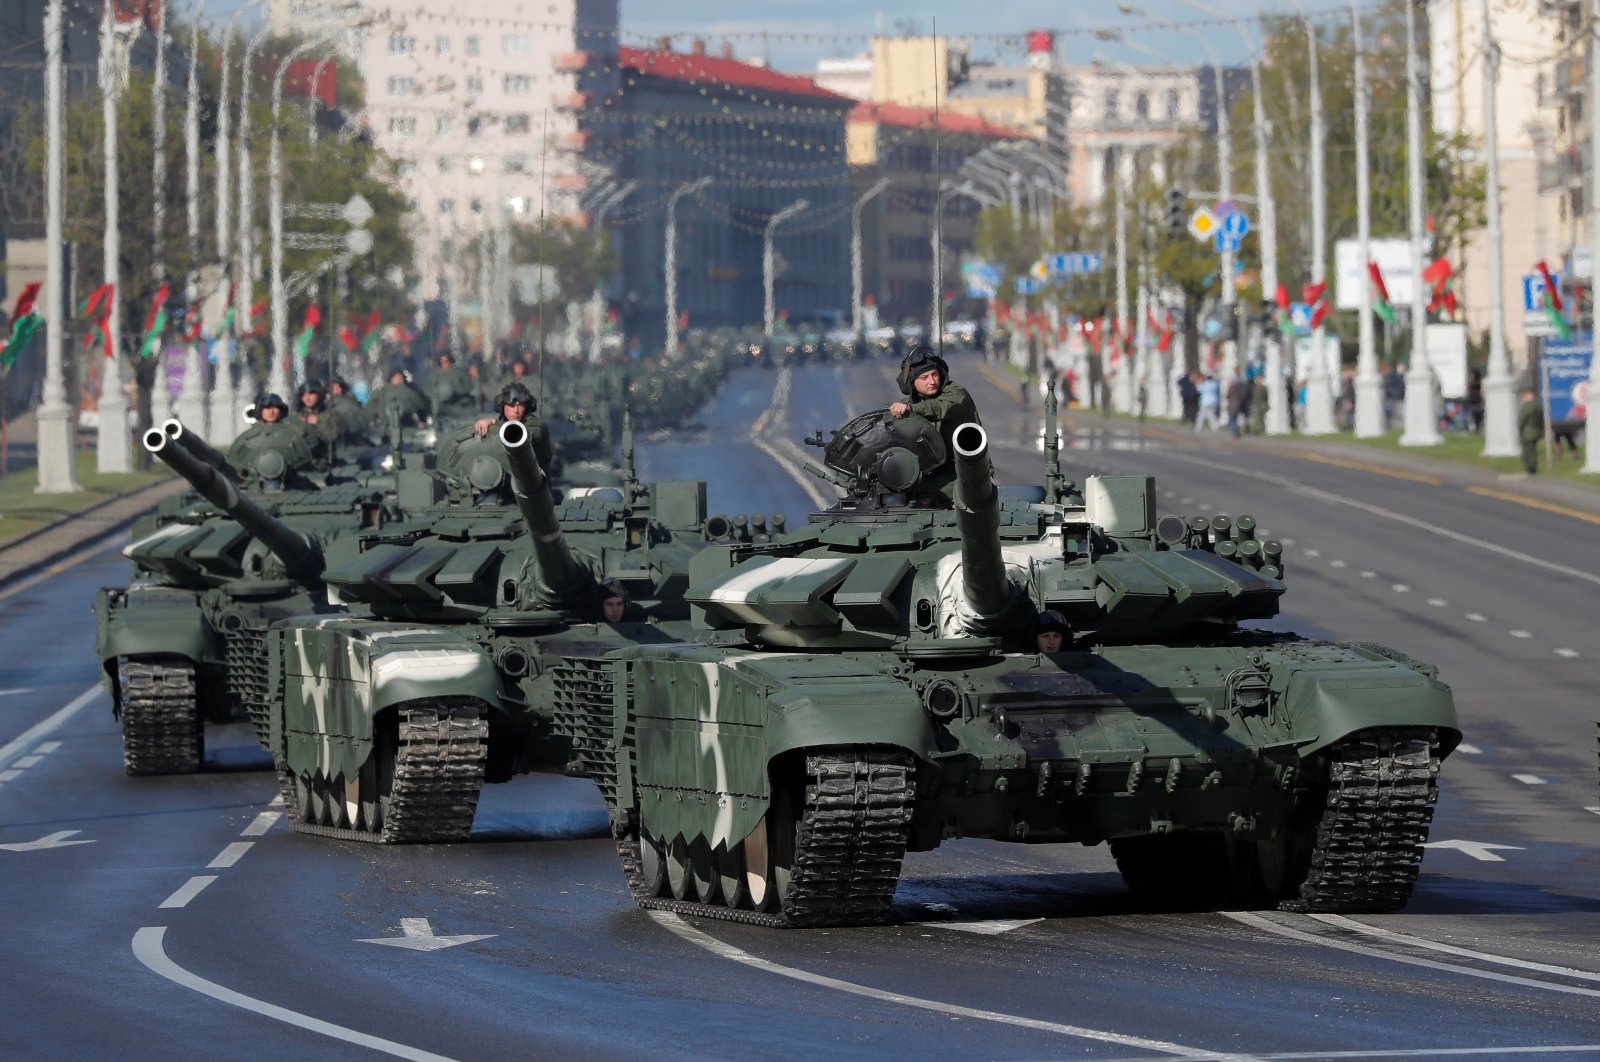 Belarusian servicemen drive tanks along the street before a rehearsal for the Victory Day parade, which marks the anniversary of the victory over Nazi Germany in World War Two, amid the coronavirus disease (COVID-19) outbreak in Minsk, Belarus May 8, 2020. (Reuters Photo)